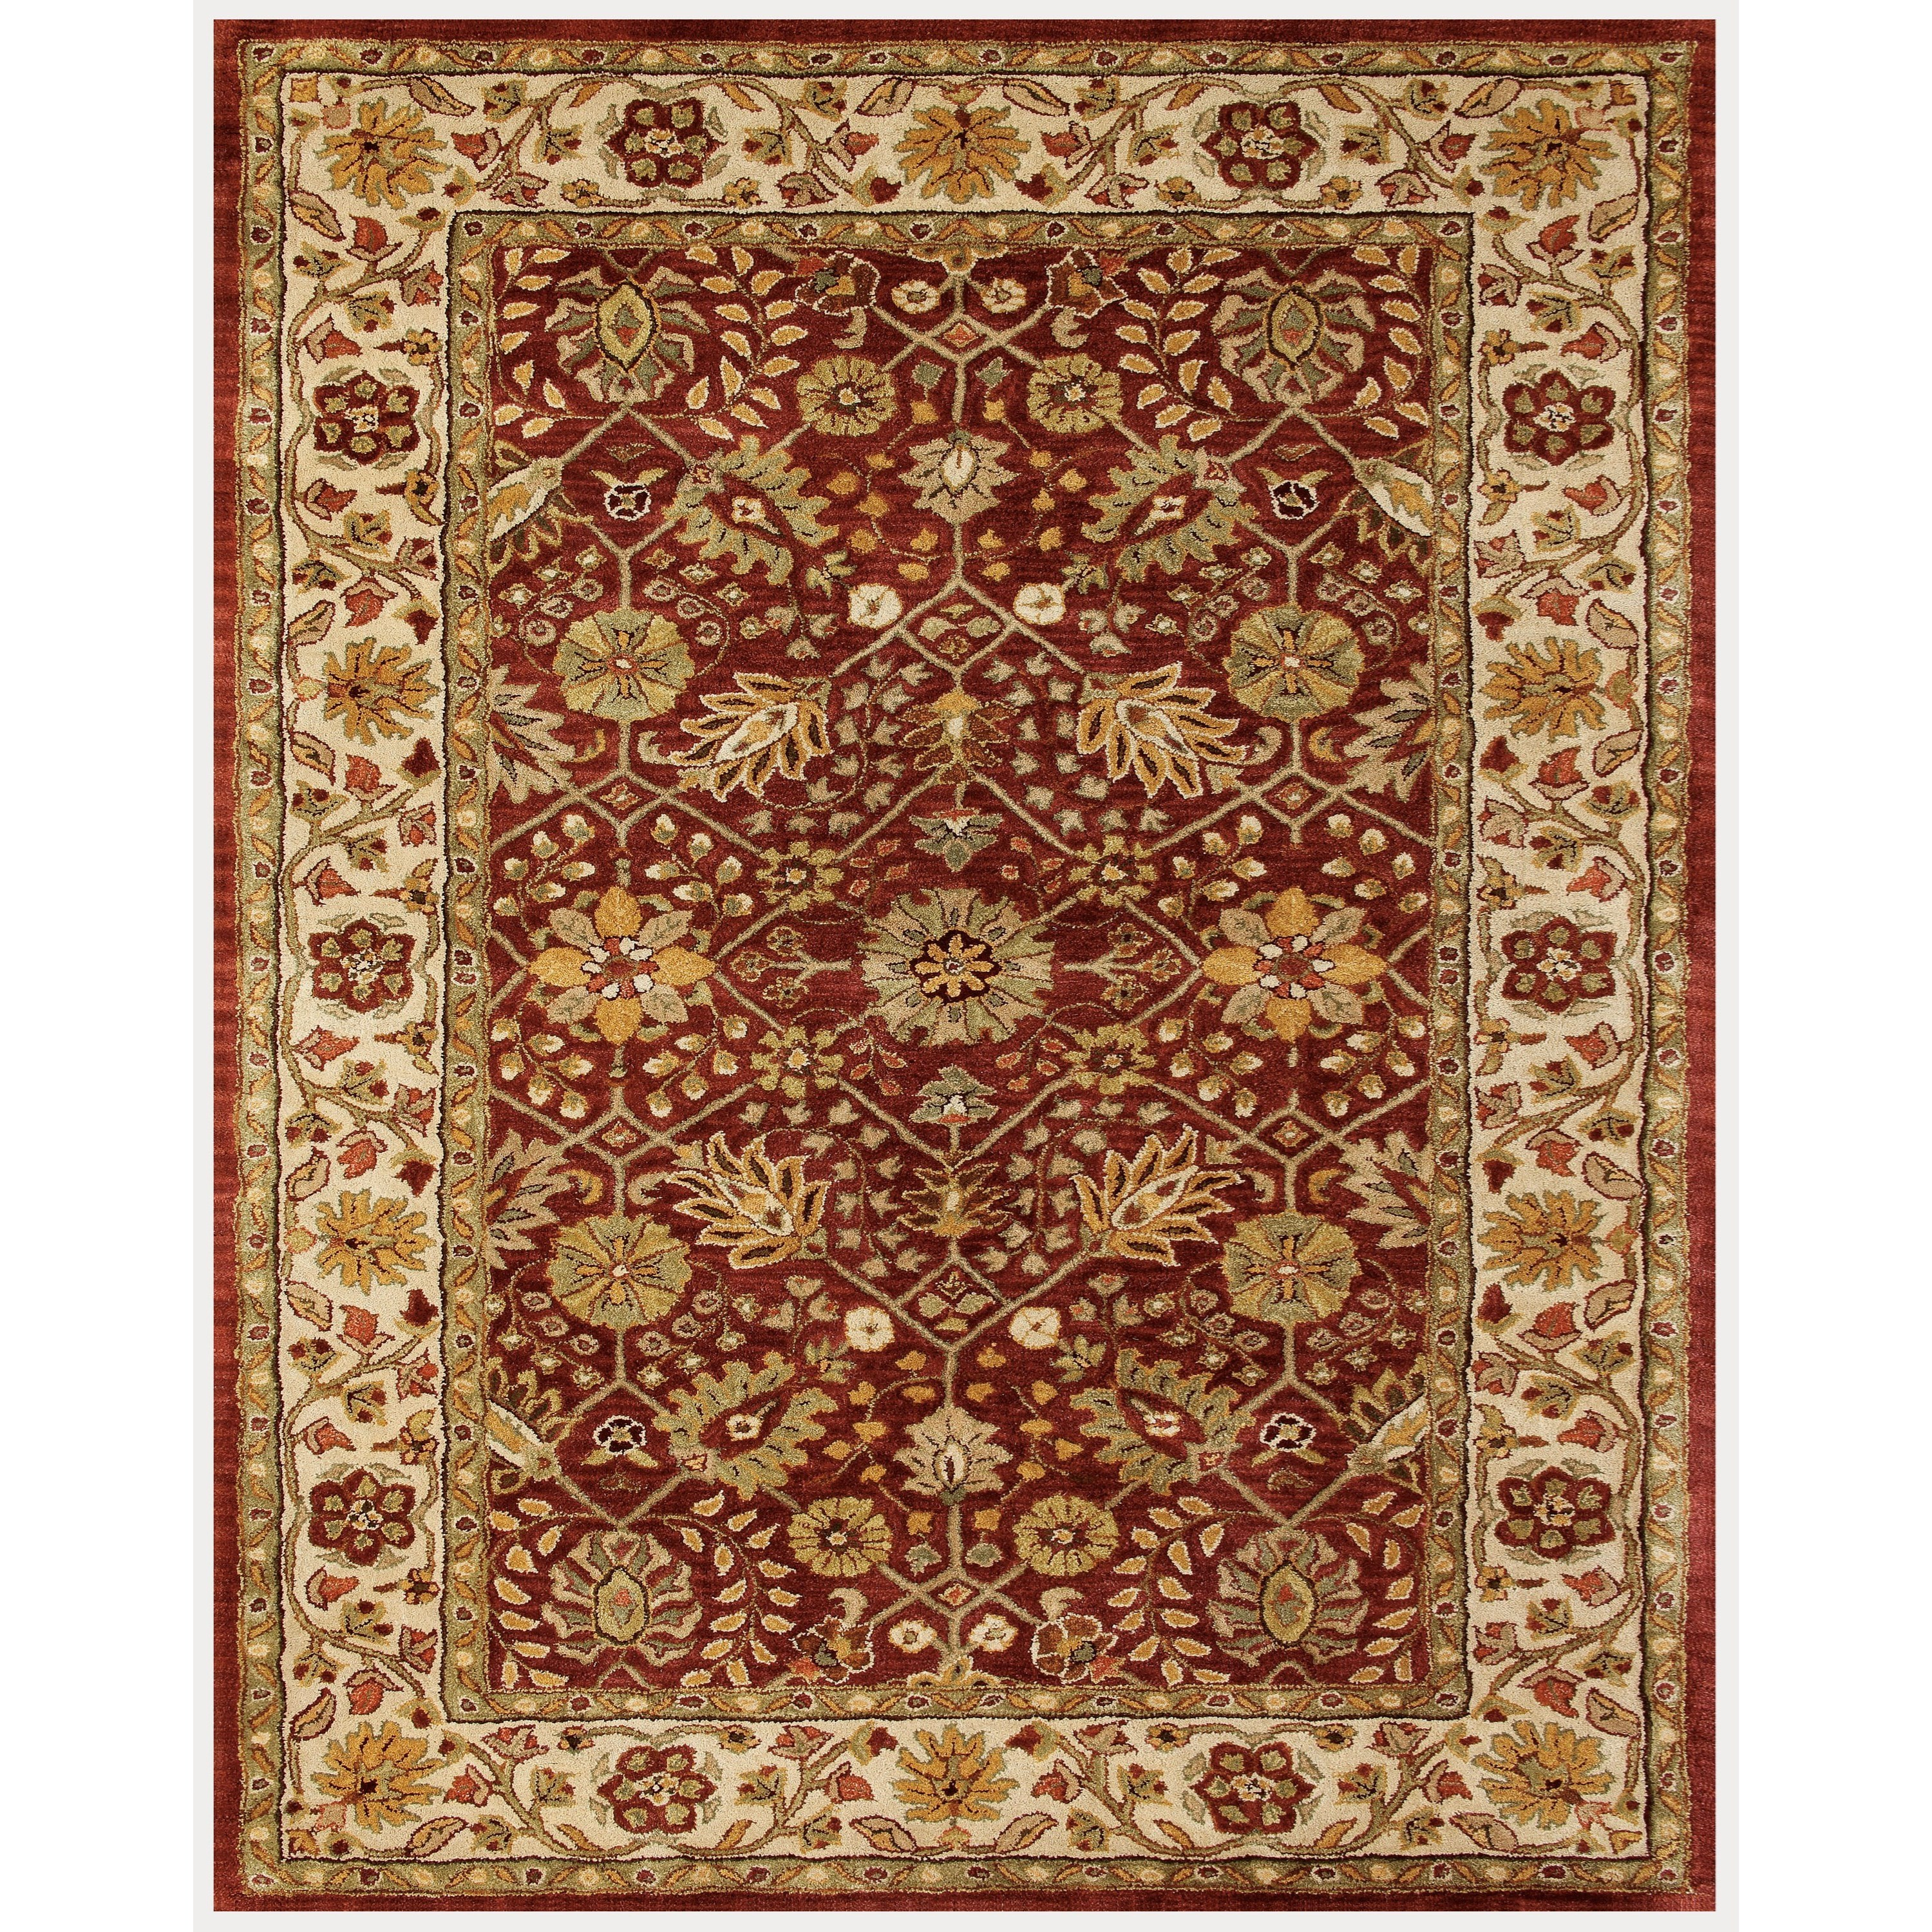 Alexandra Cranberry/Ivory 5' x 8' Area Rug by Feizy Rugs at Sprintz Furniture